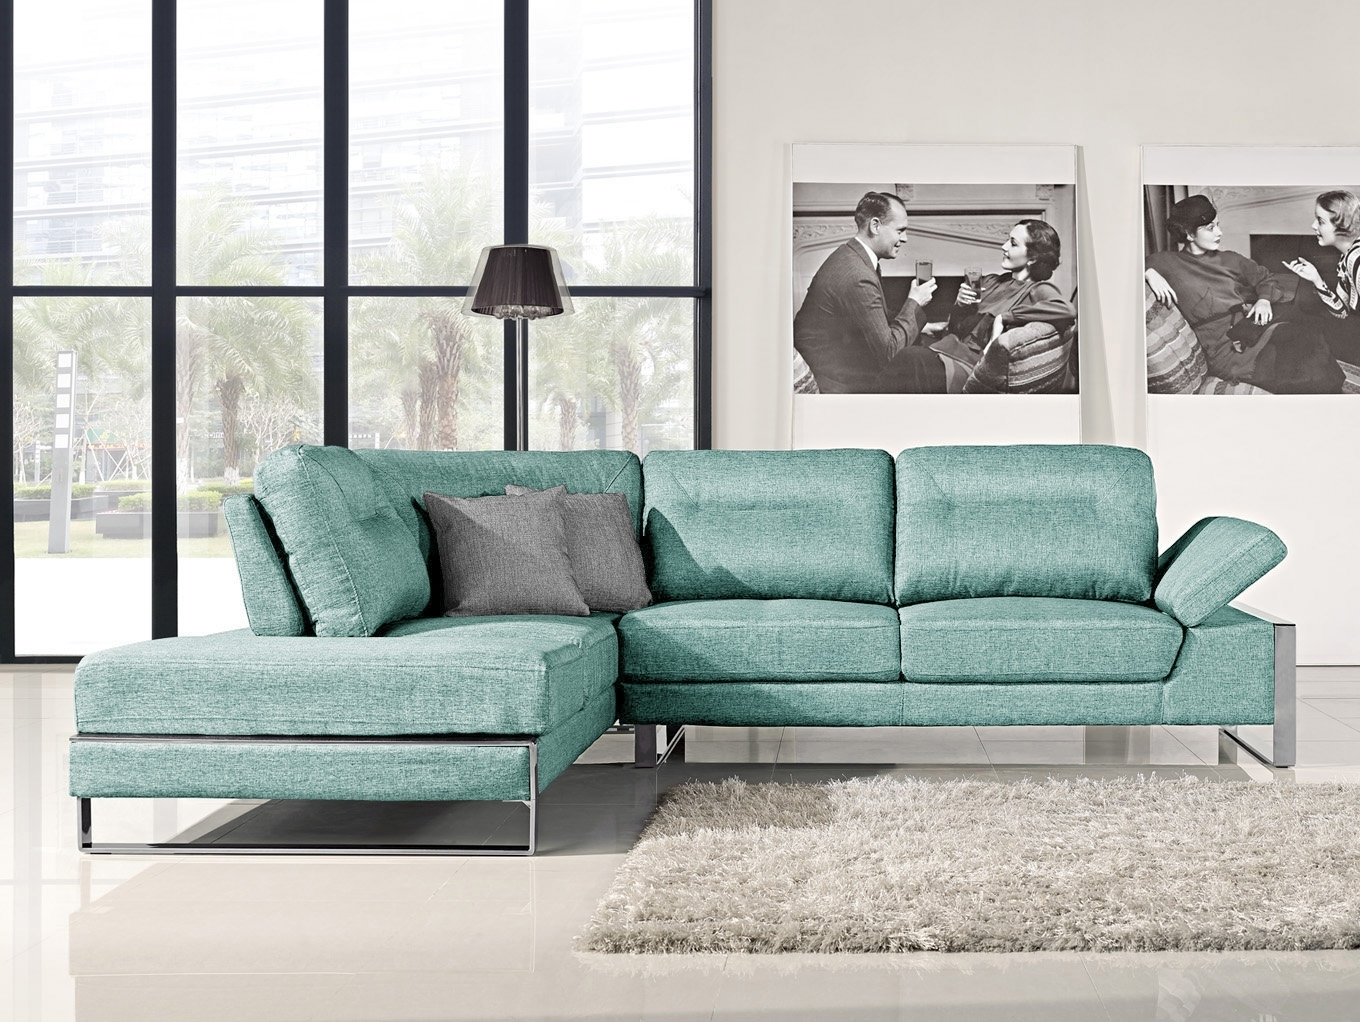 Orren Ellis Kealy Sofa Reclining Sectional | Wayfair throughout Collins Sofa Sectionals With Reversible Chaise (Image 21 of 30)